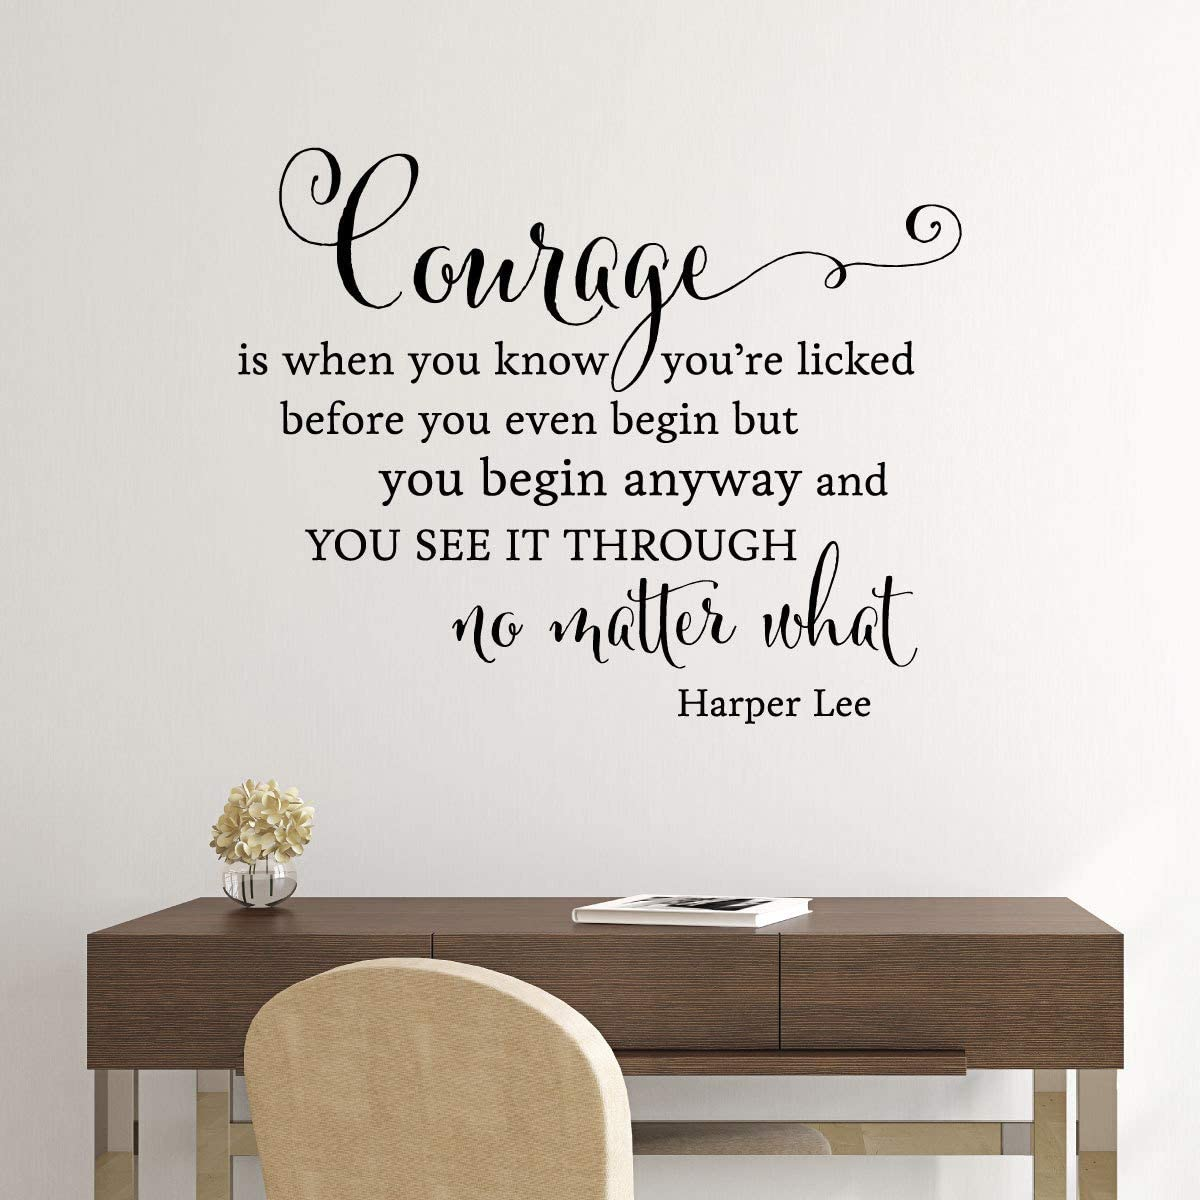 Wall Quote Decal Courage Begin Anyway See It Through Harper Lee Kill A Mockingbird Author Book Quote Inspirational Wall Art Vinyl Wall Decal